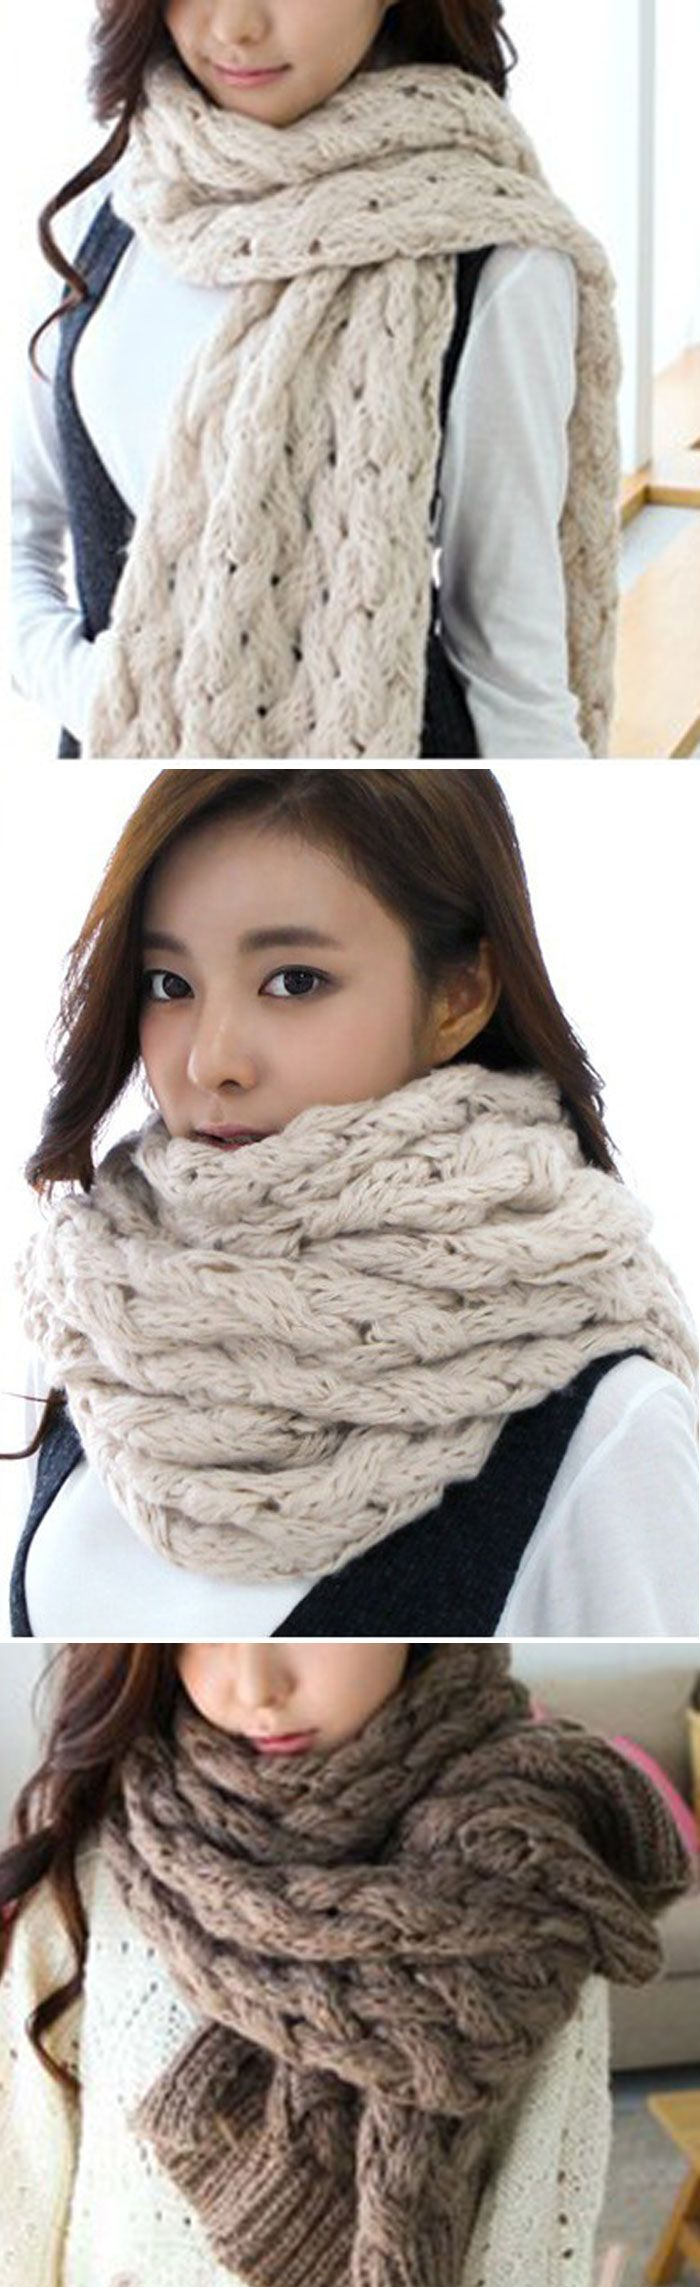 Meet the new Knits---cross,soft and ready for anything. The Cross Scarf is made in comfy mohair. More surprises at CUPSHE.COM !